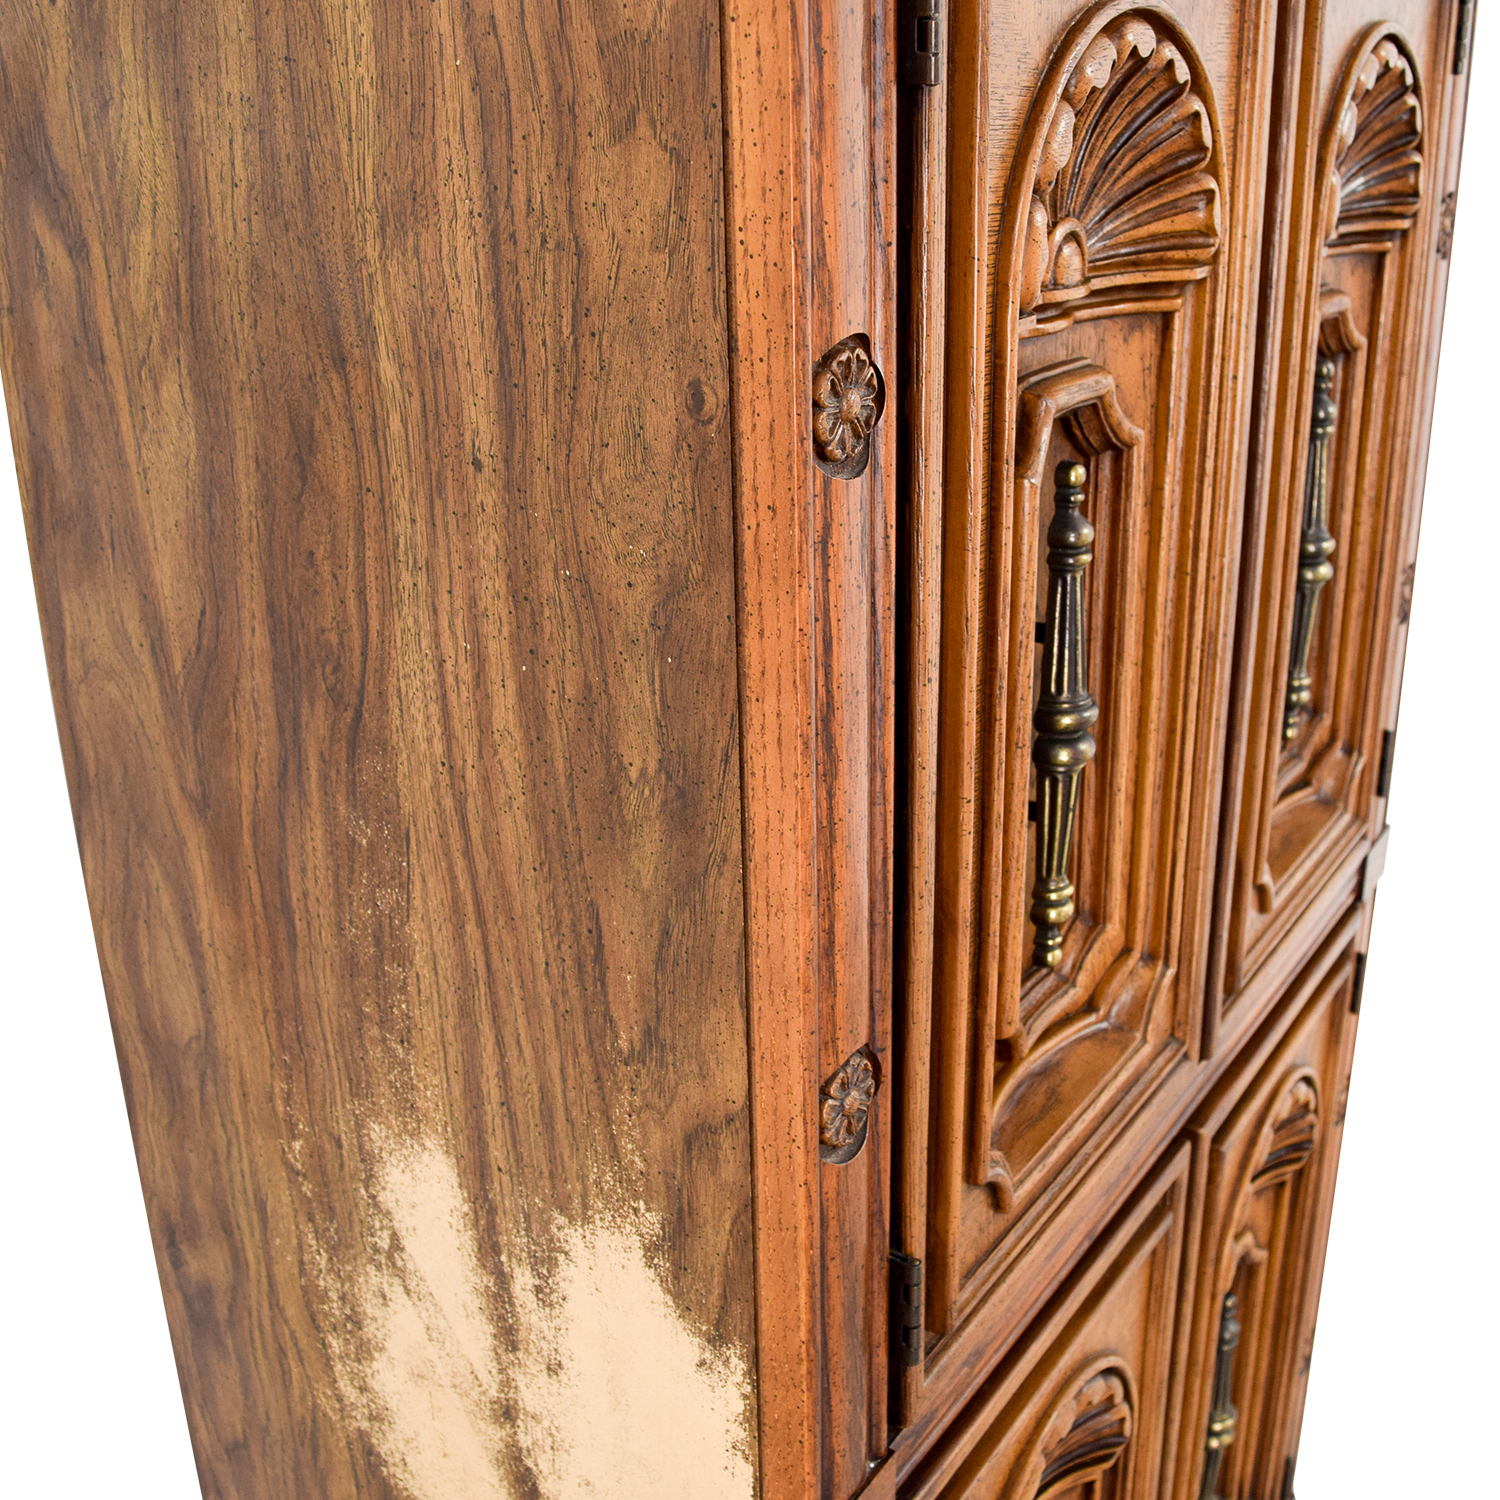 Seaman's Seaman's Carved Wood Armoire / Storage